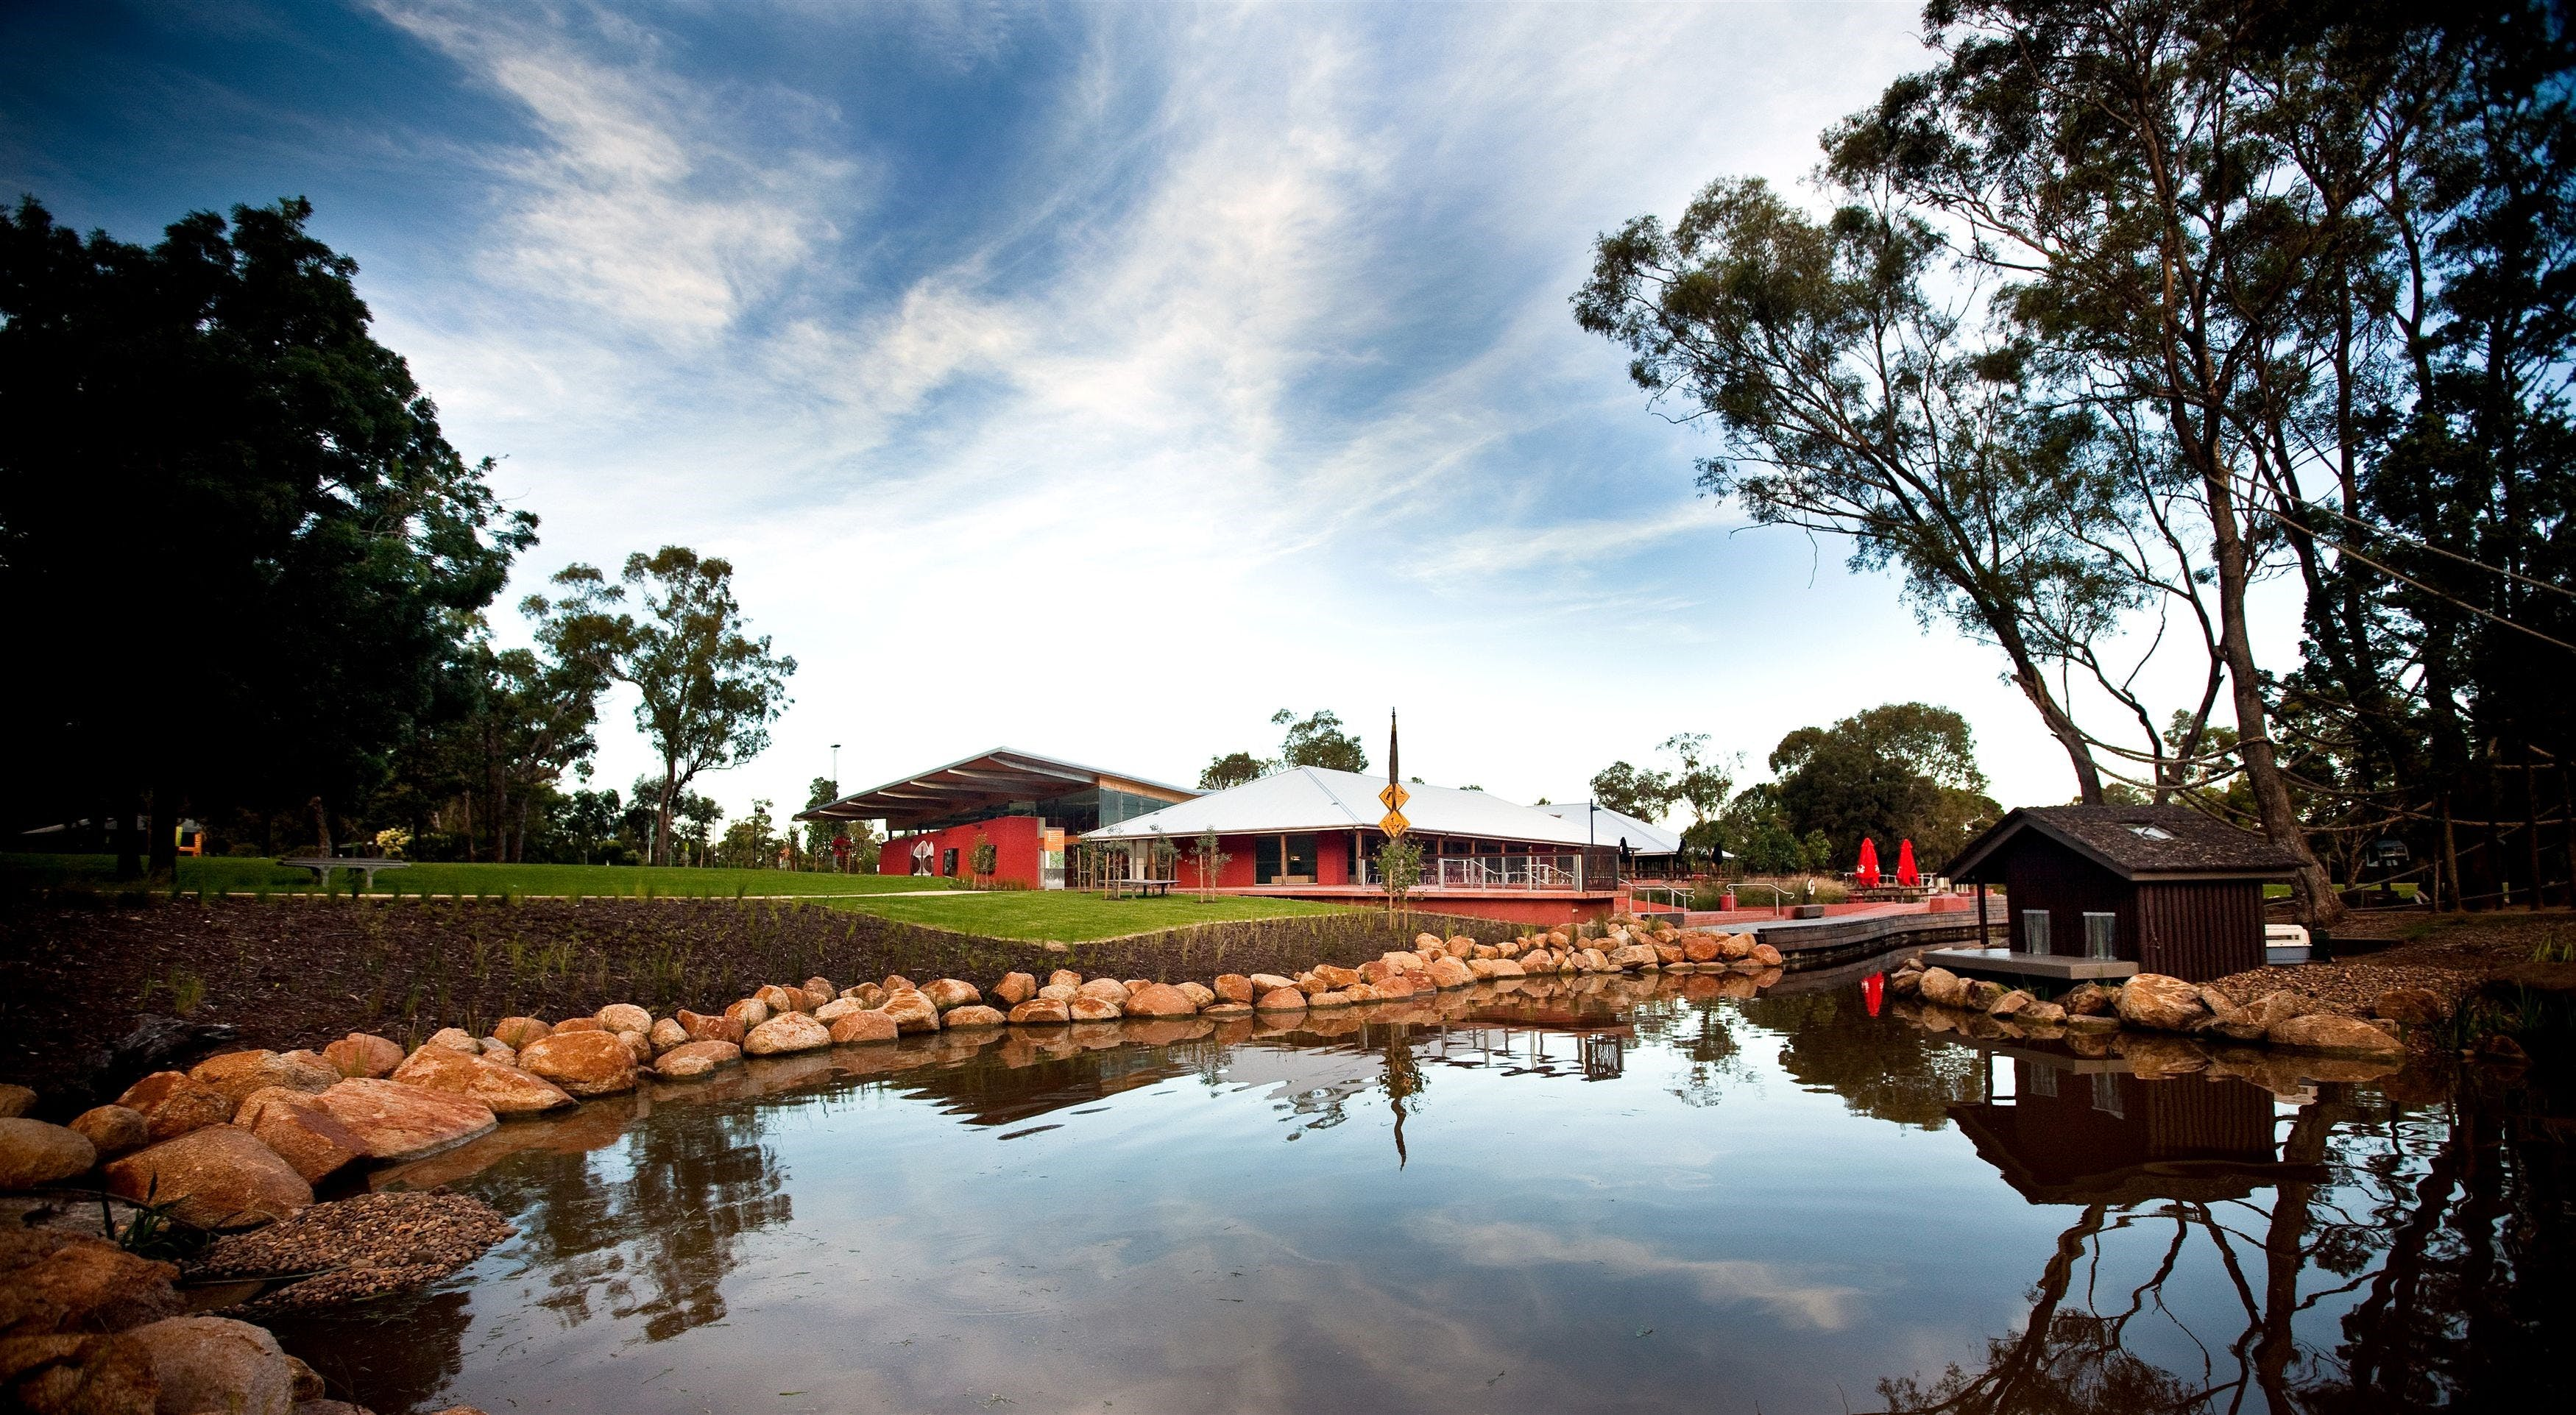 Savannah Visitor Plaza Taronga Western Plains Zoo Dubbo - Accommodation Rockhampton